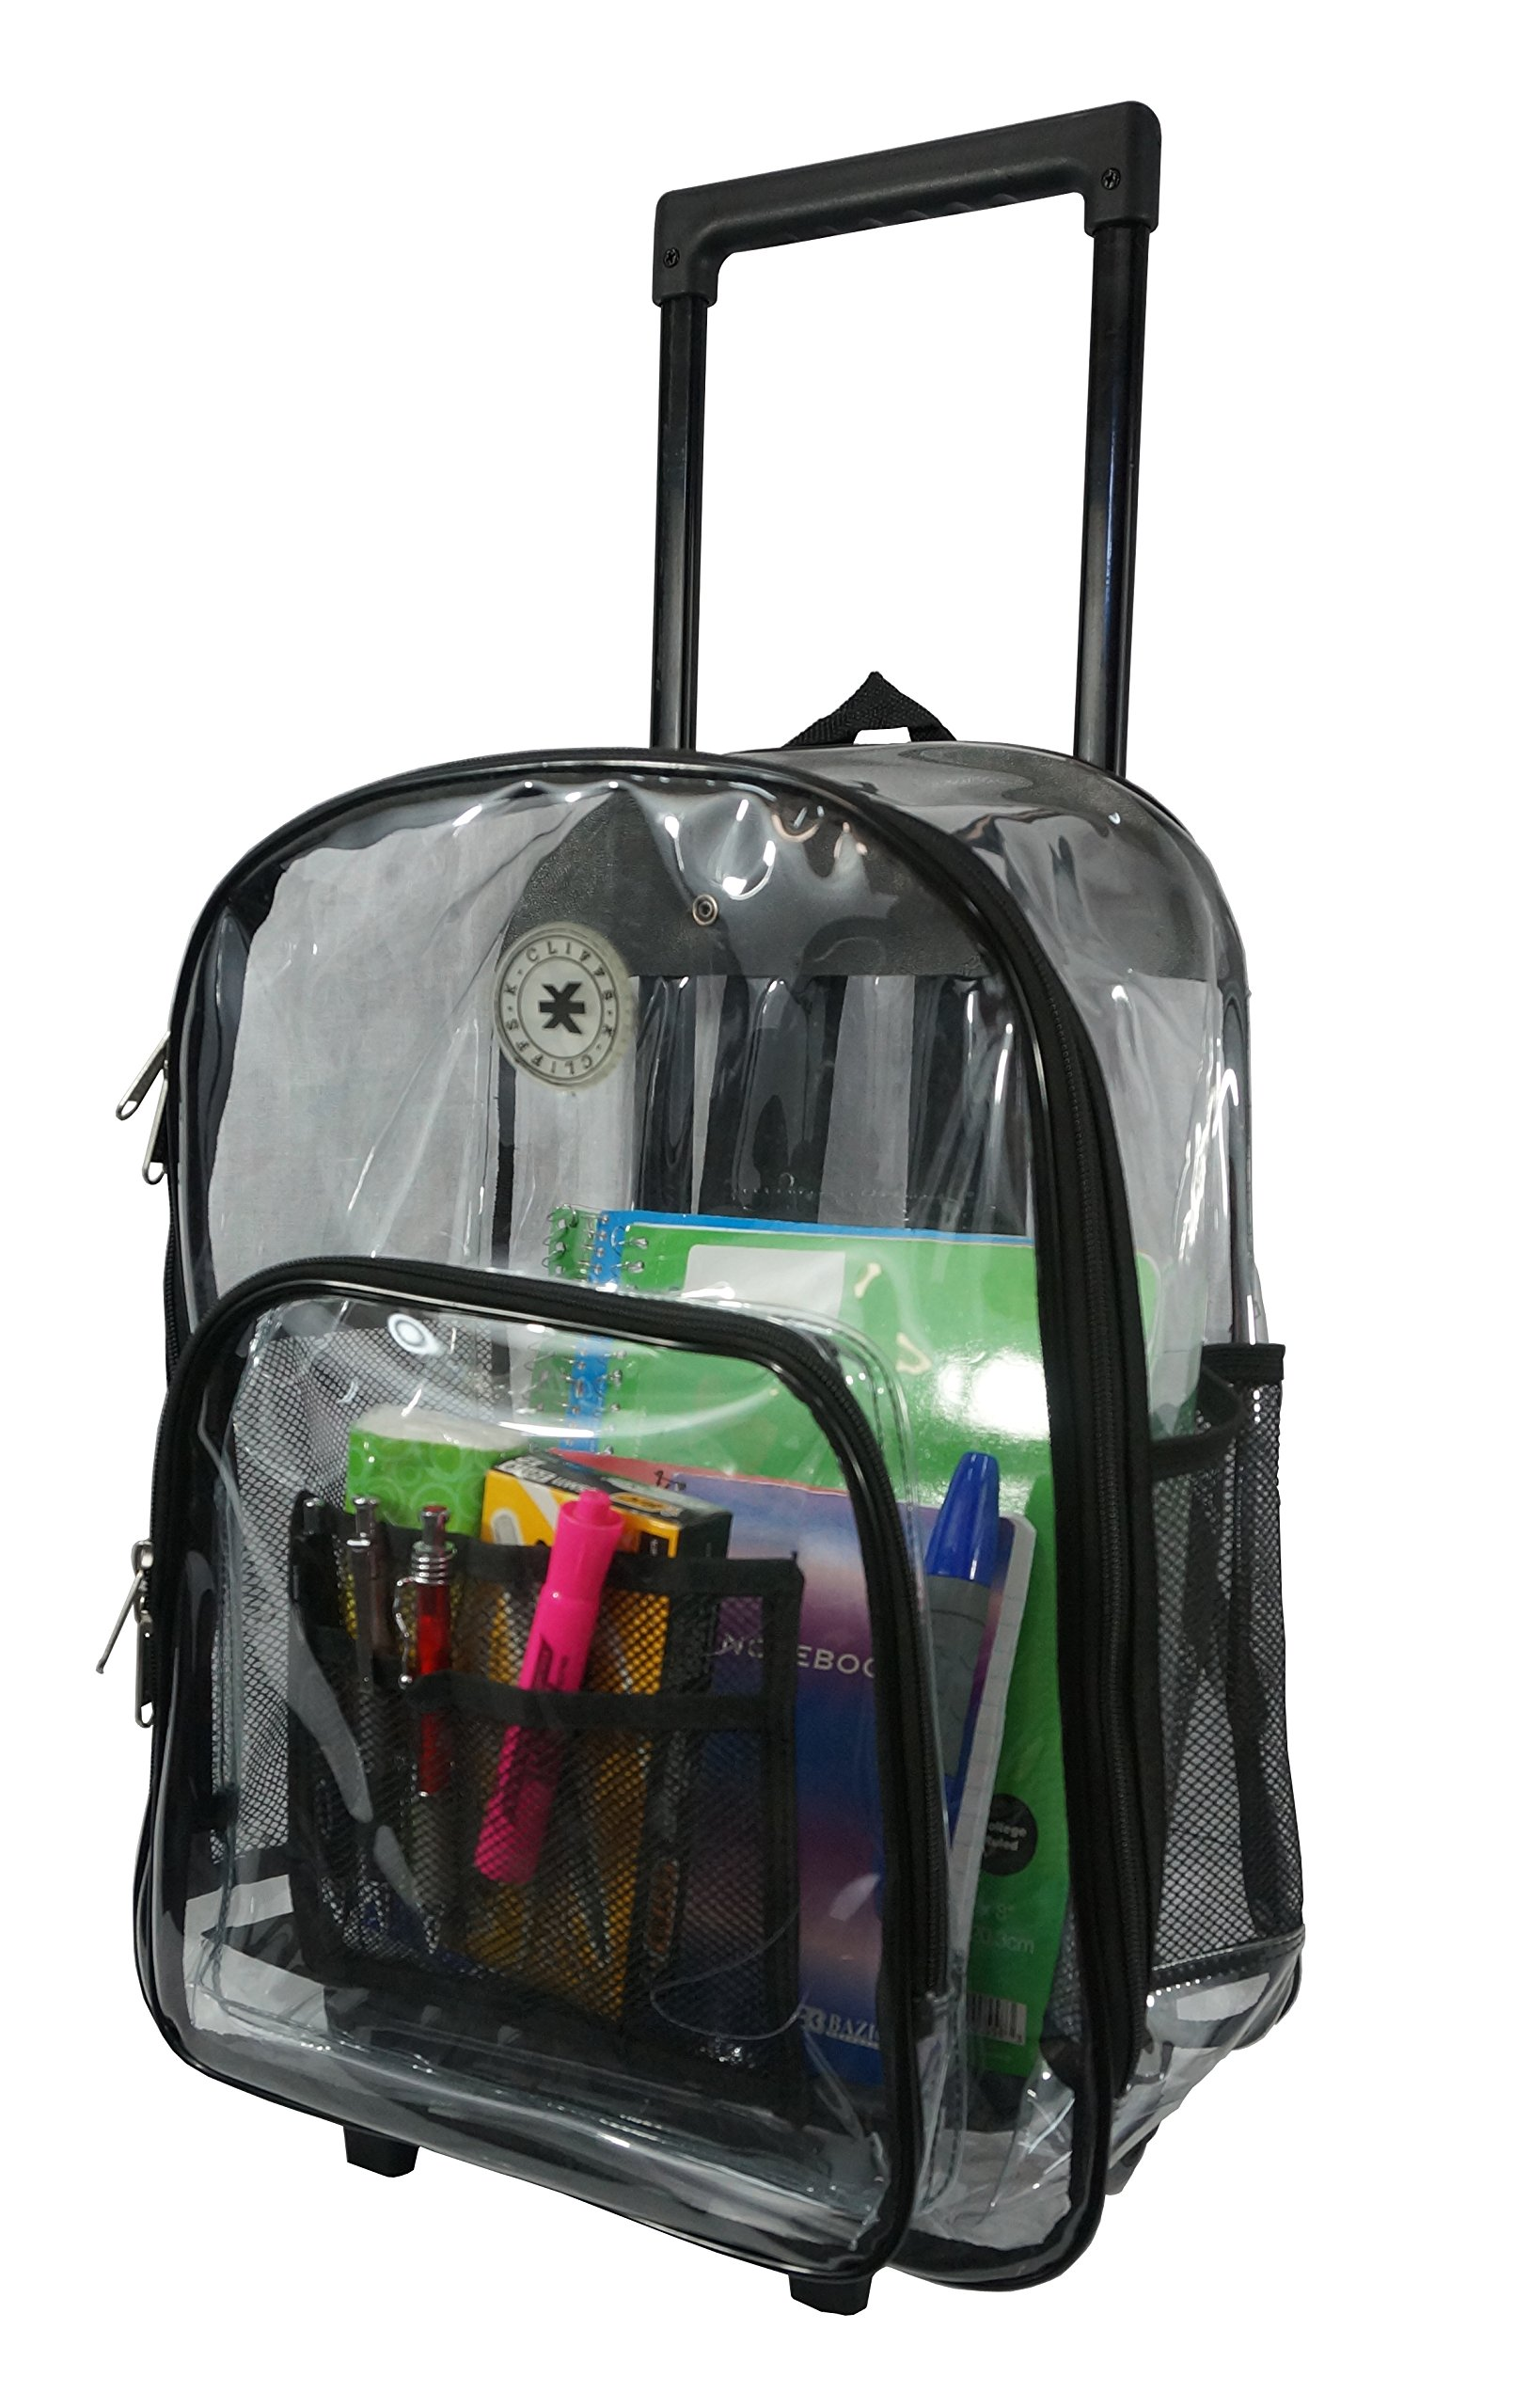 Rolling Clear Backpack Heavy Duty Bookbag Quality See Through Workbag Travel Daypack Transparent School Book Bags with Wheels Black by K-Cliffs (Image #6)